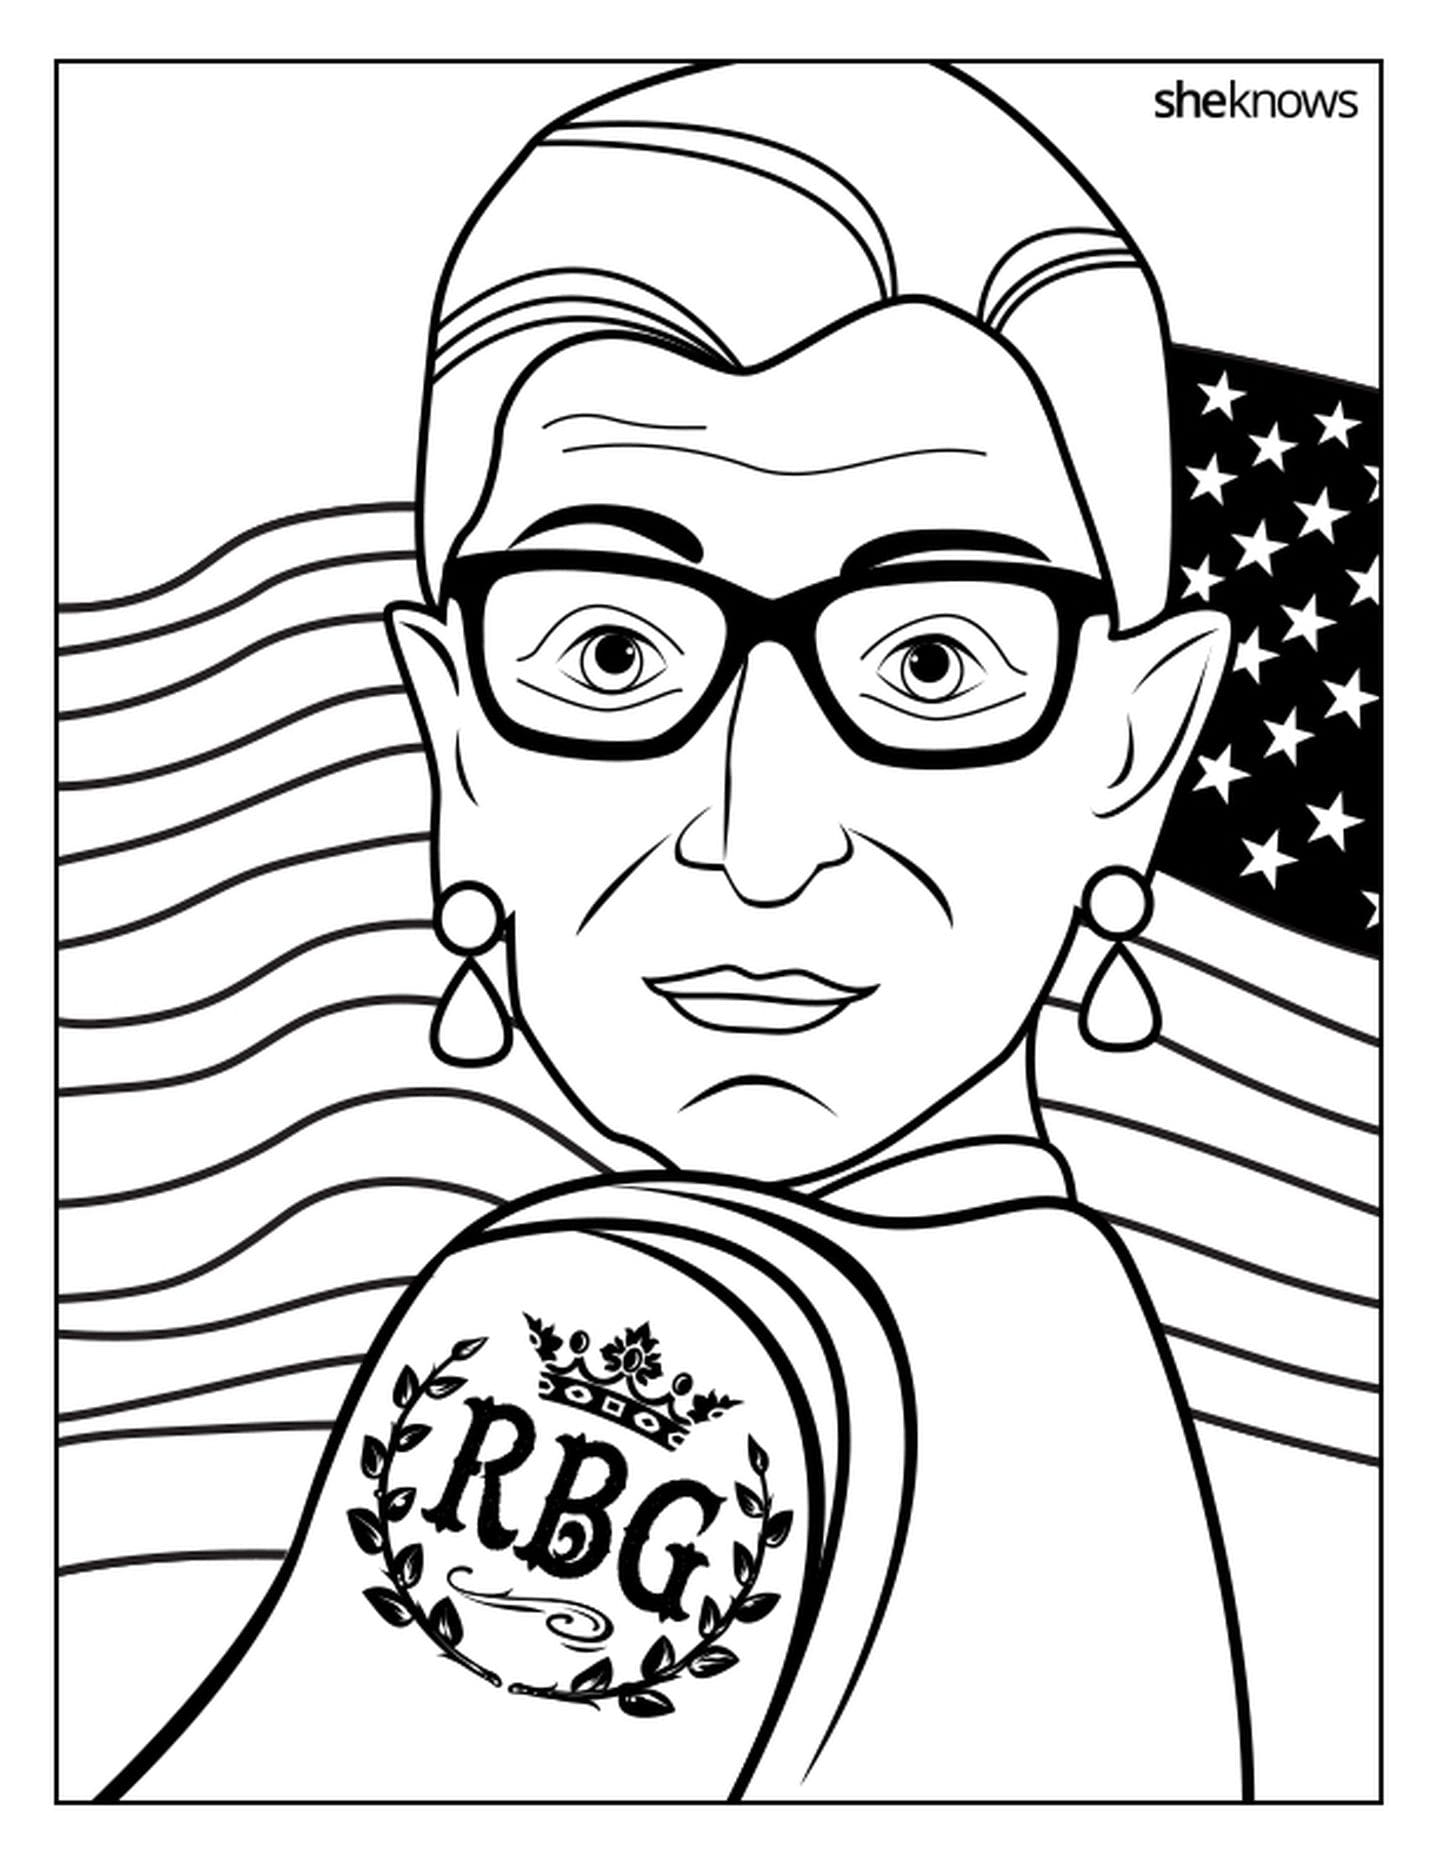 Get your crayons ready — there's an RBG coloring book